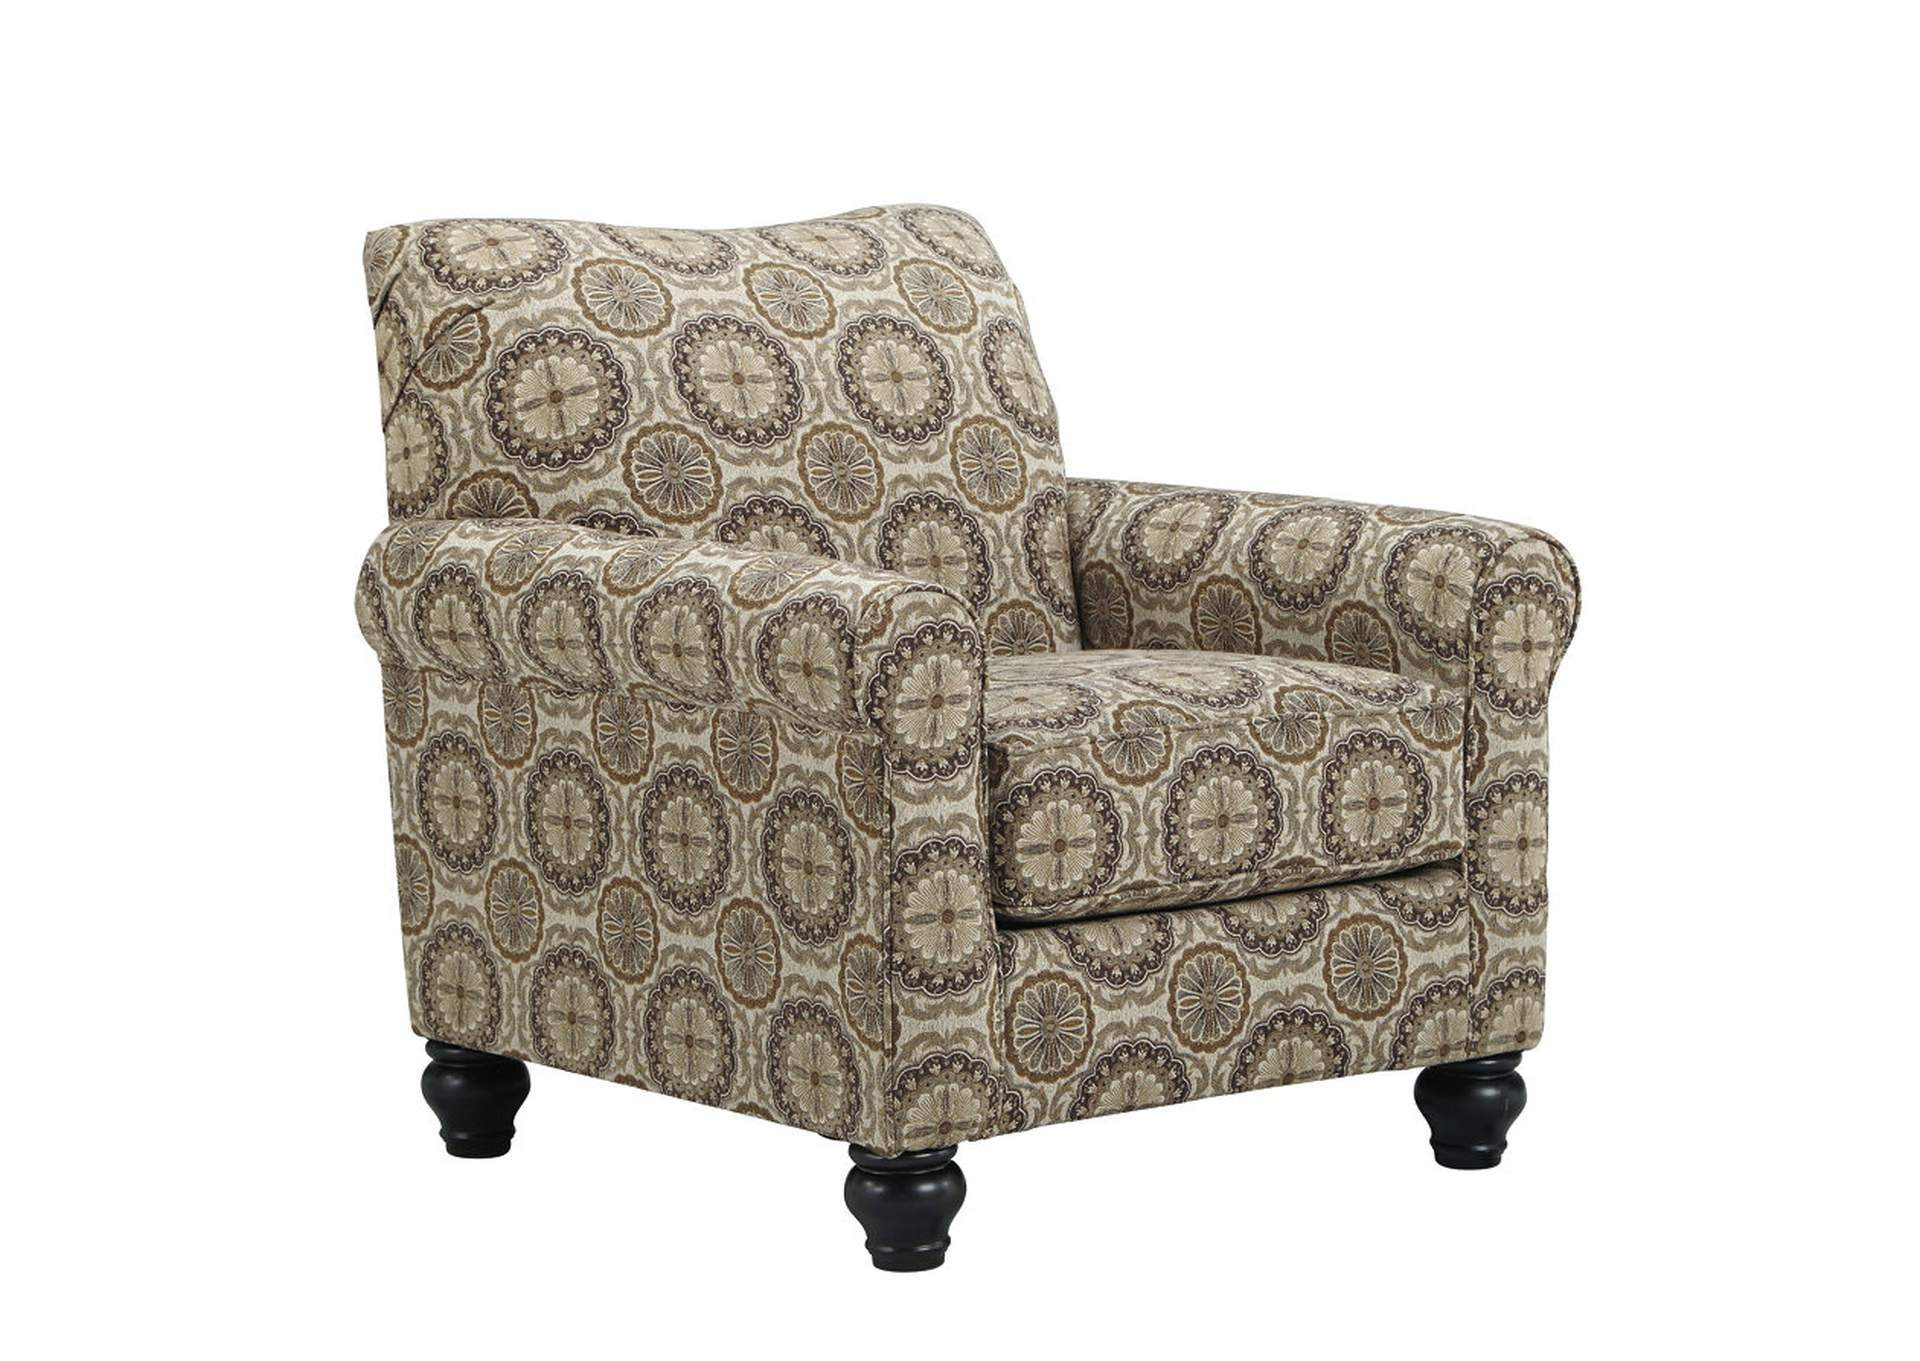 Langlois Furniture Muskegon Mi Breville Burlap Accent Chair